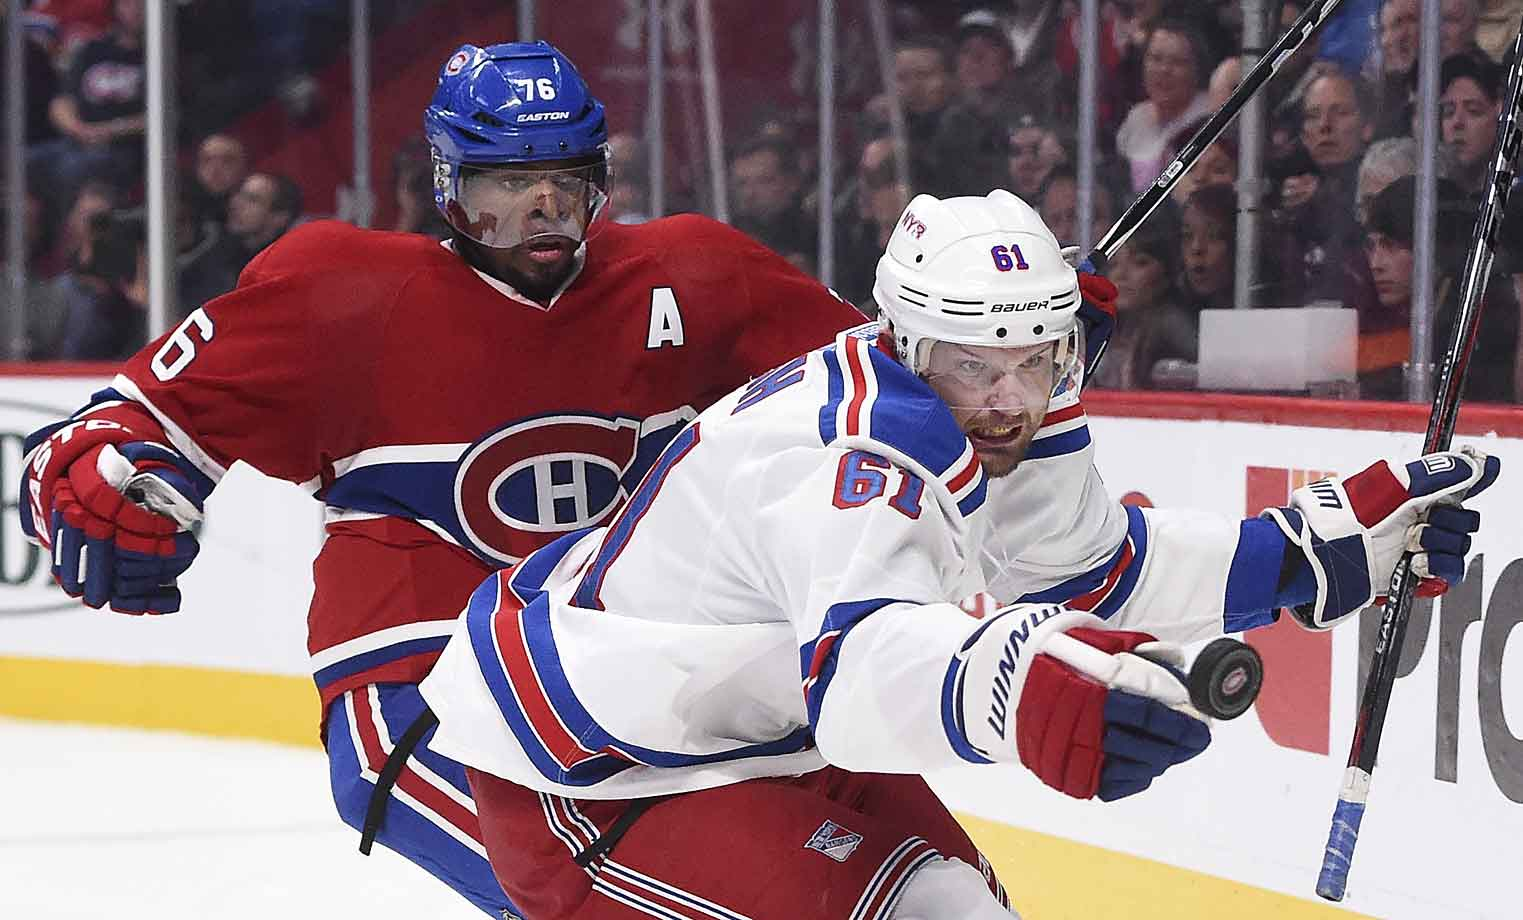 The Canadiens defenseman and the Rangers' red hot winger pursue that ever elusive puck at Montreal's Bell Centre on Oct. 25, 2014.